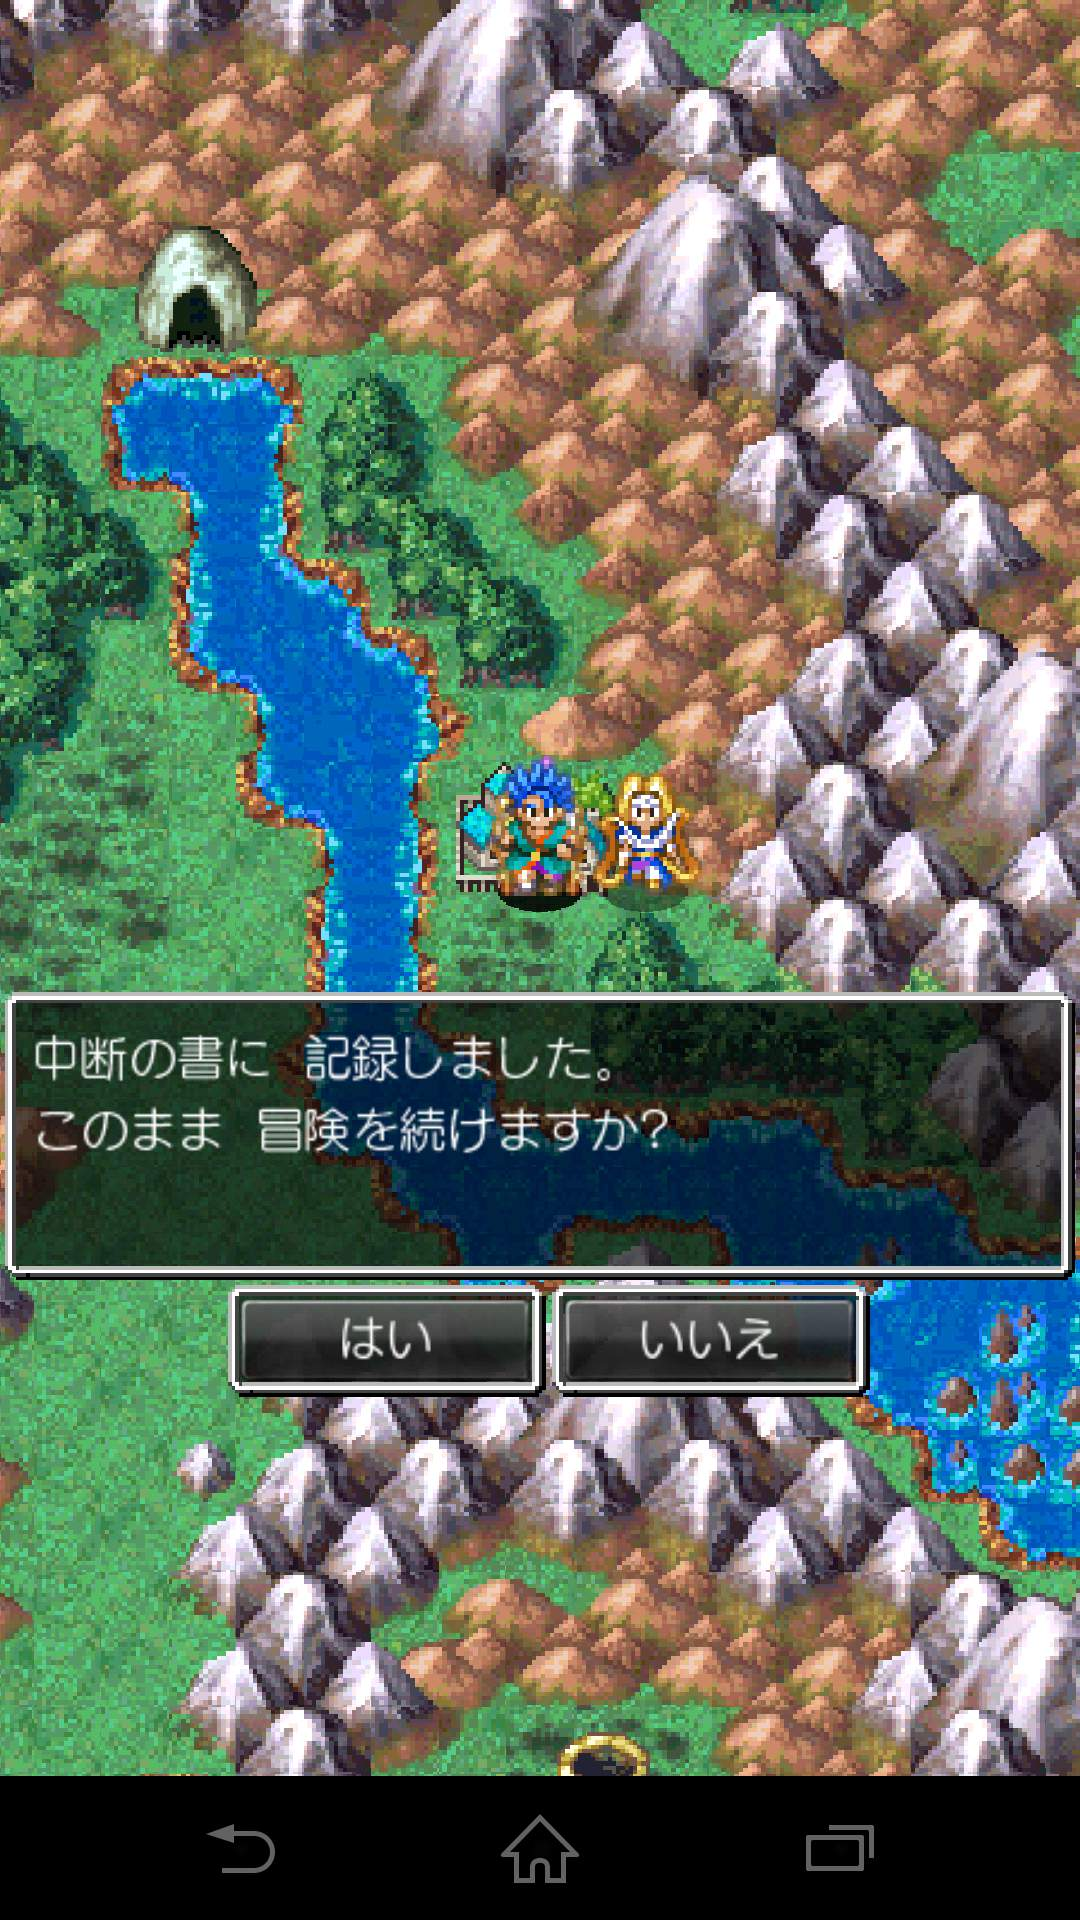 dq6-iphone-android-ios-10